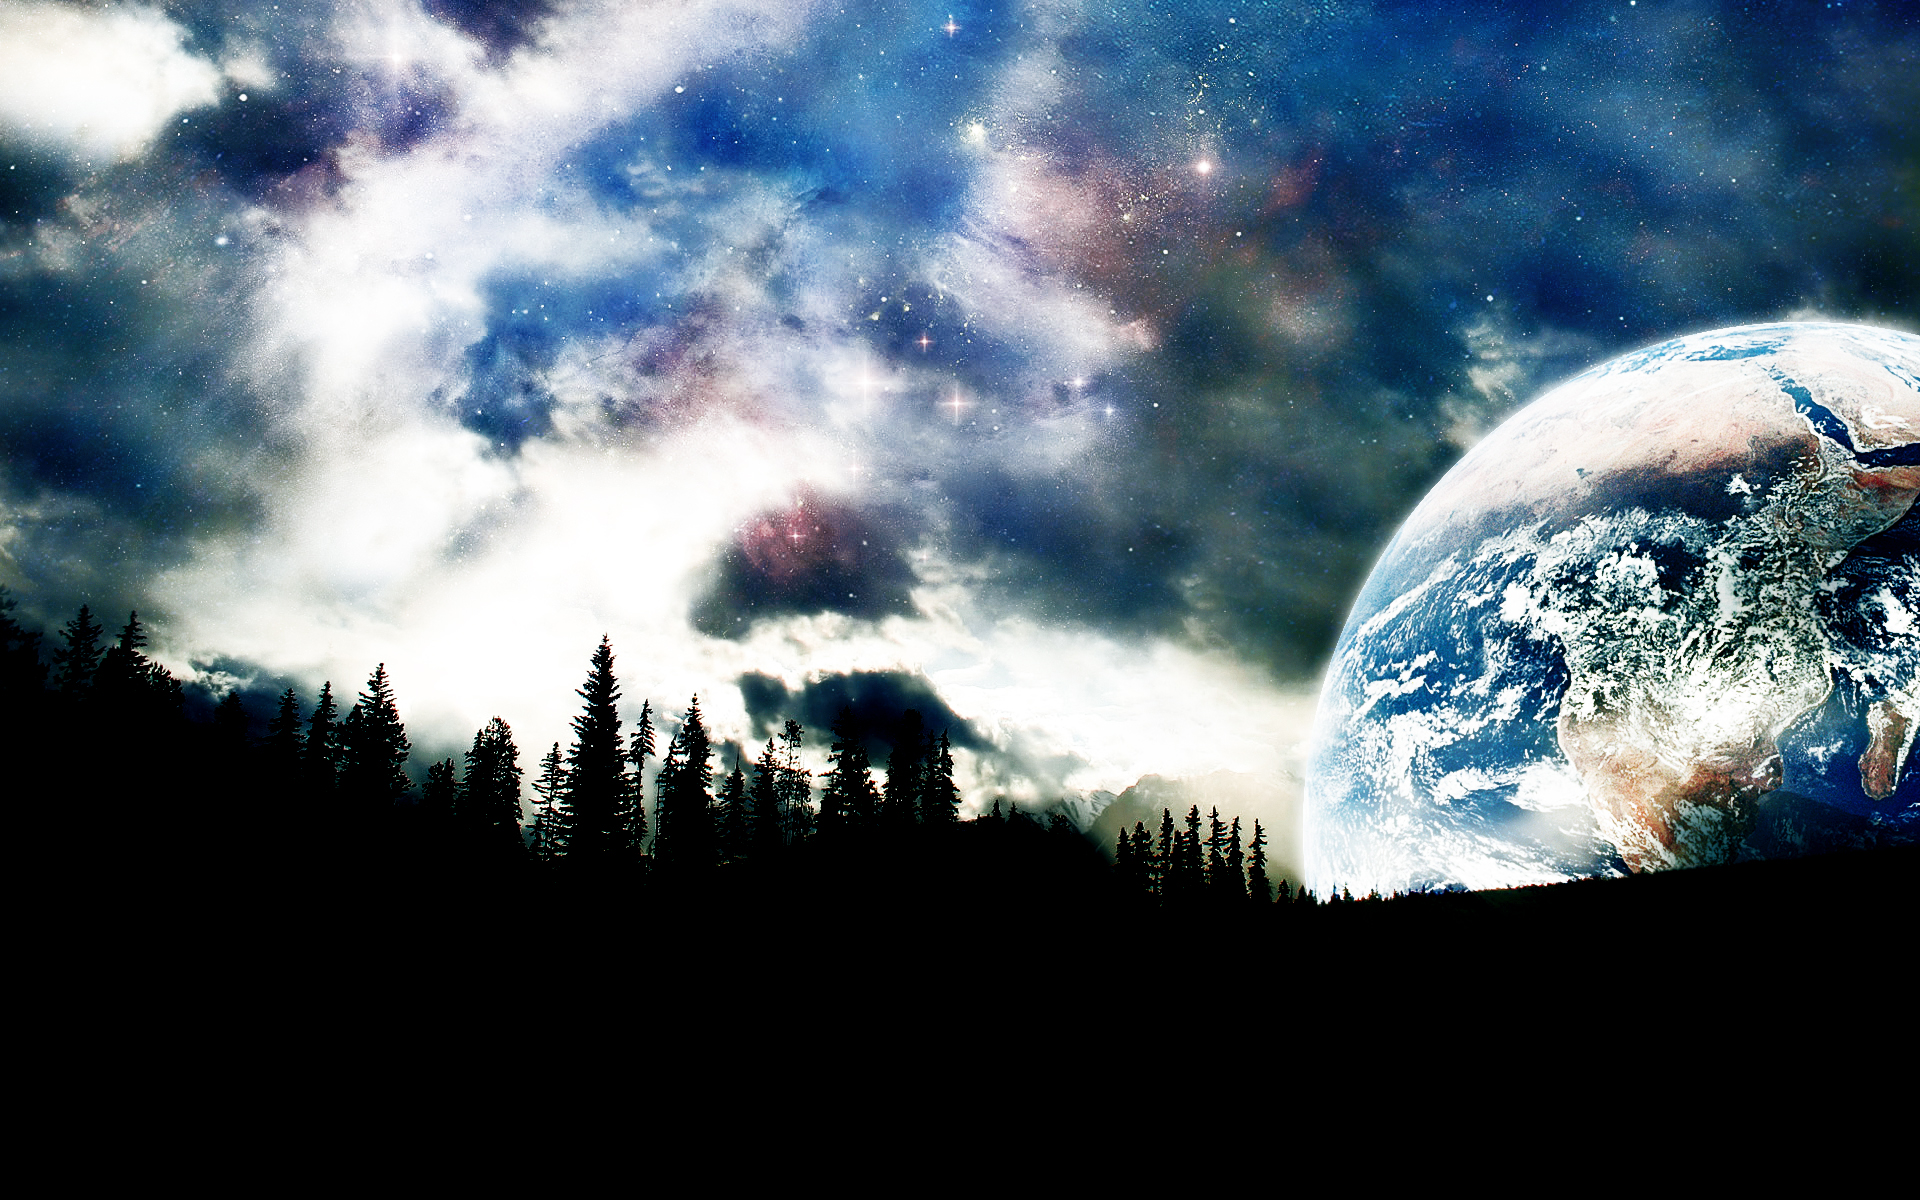 space 1080p wallpaper landscape - photo #1